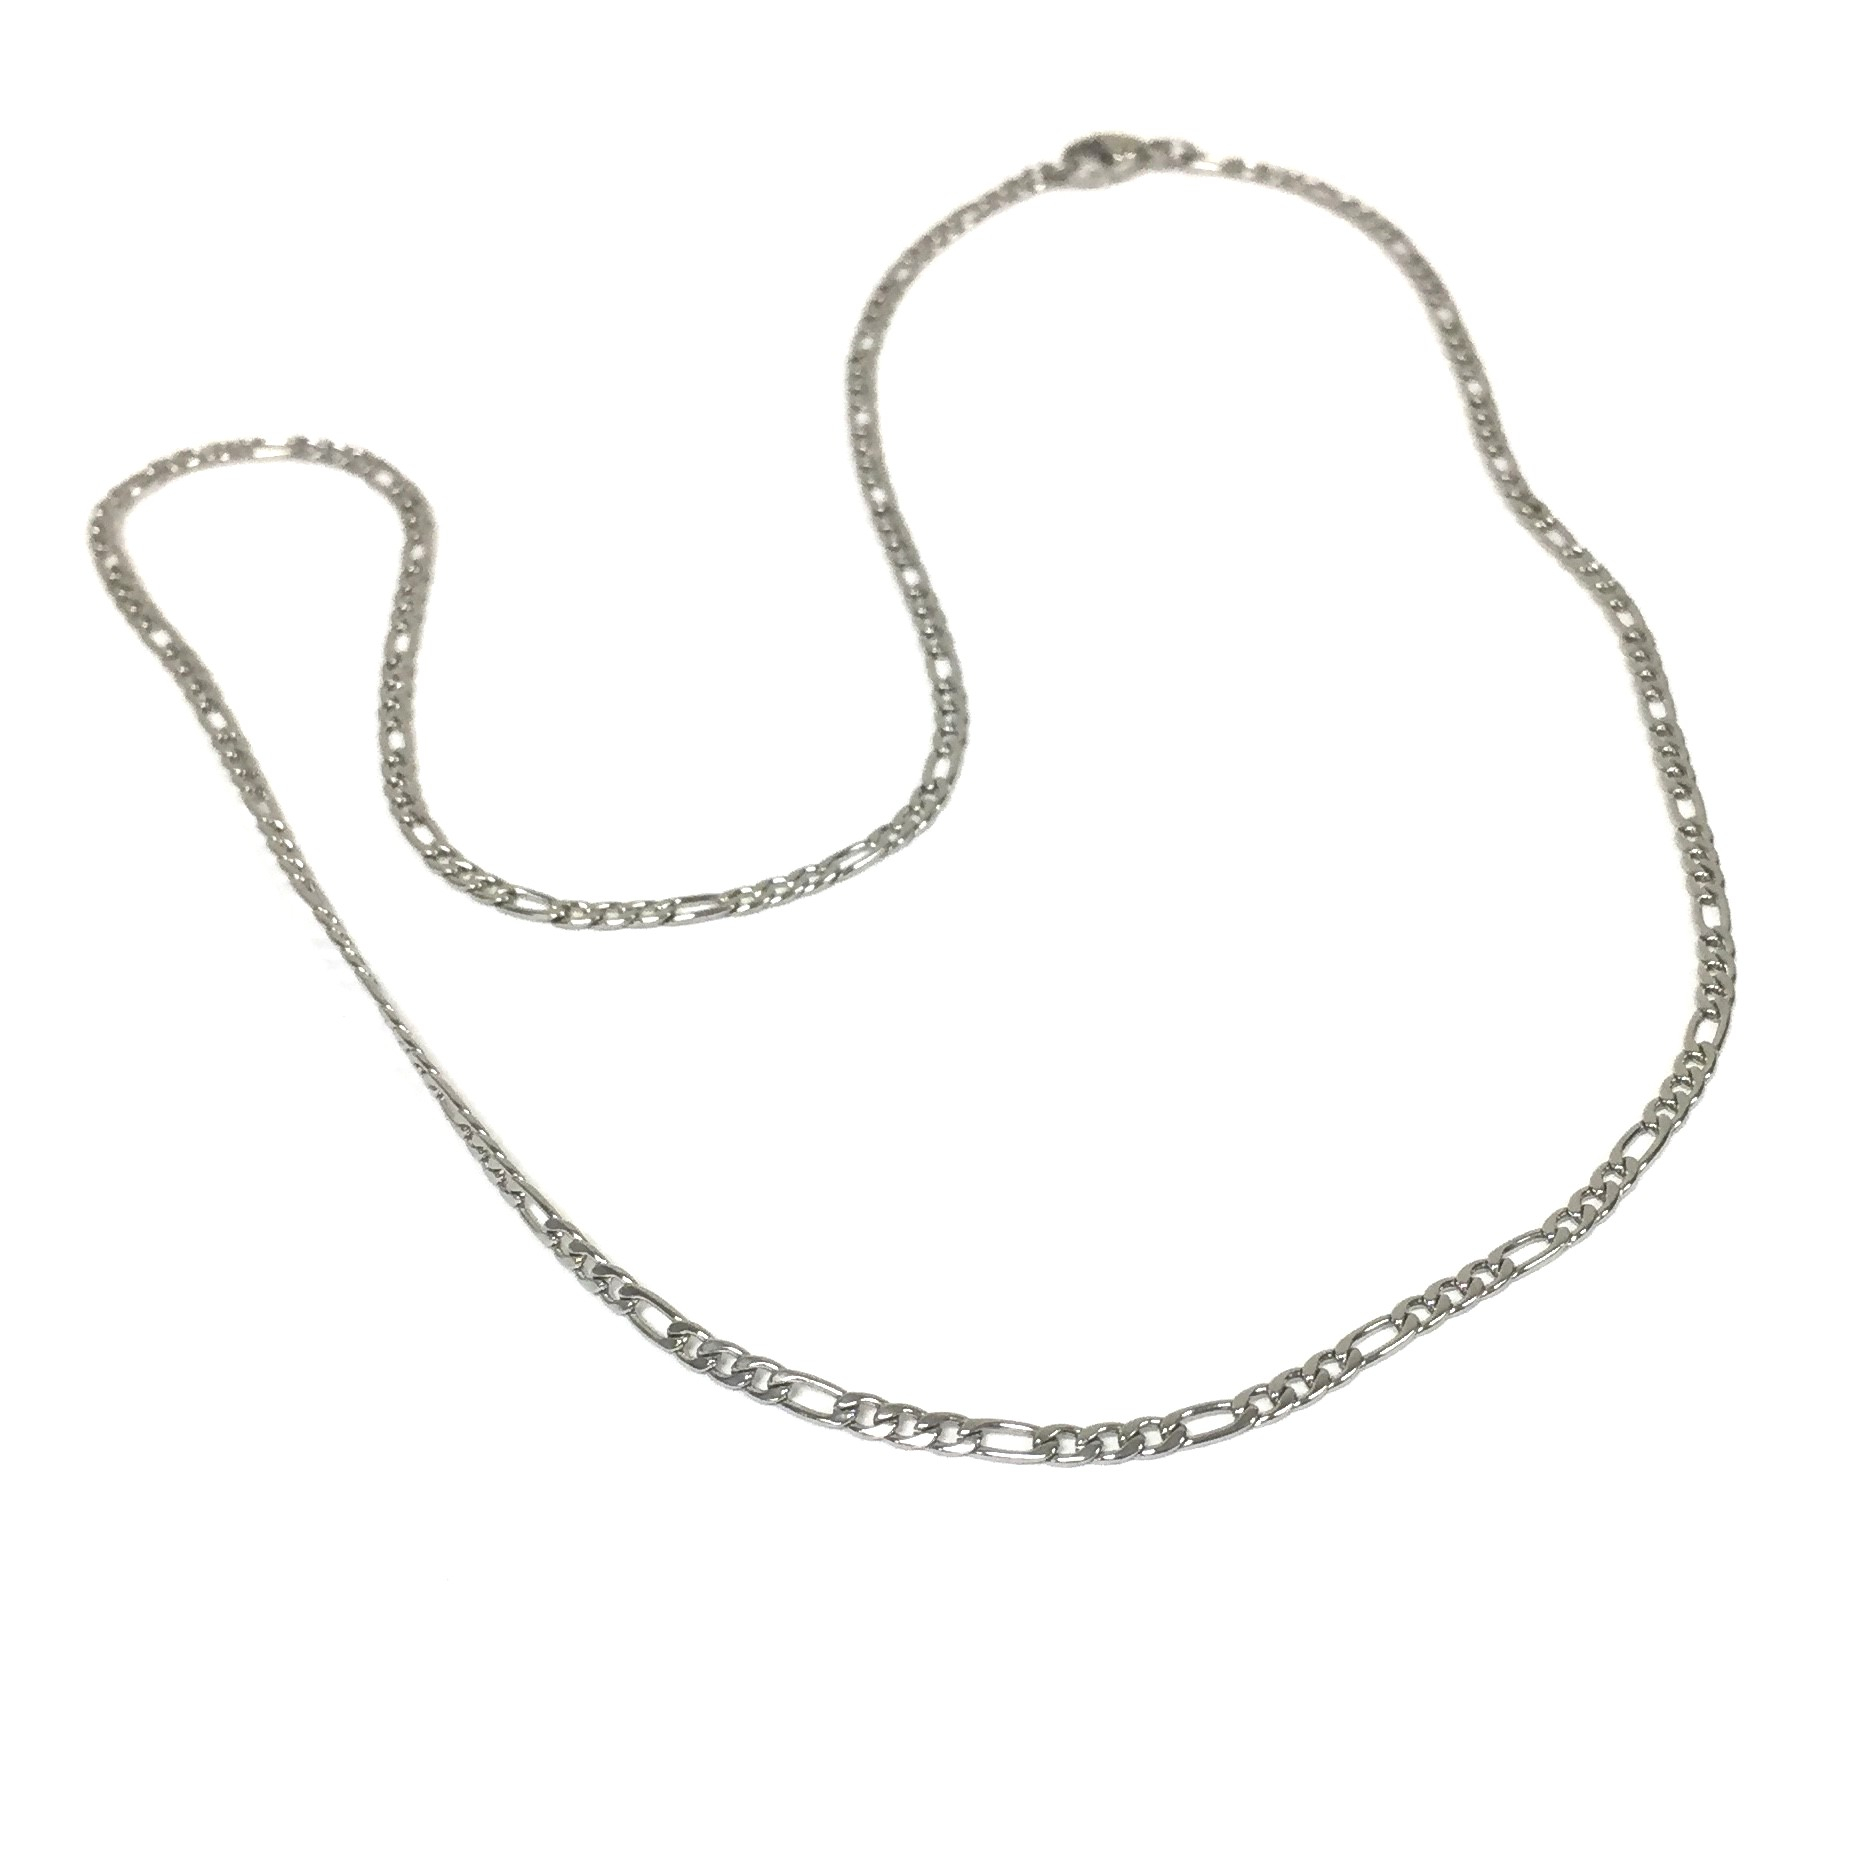 Figaro Stainless Steel Chain Necklace Regarding Newest Classic Figaro Chain Necklaces (Gallery 18 of 25)